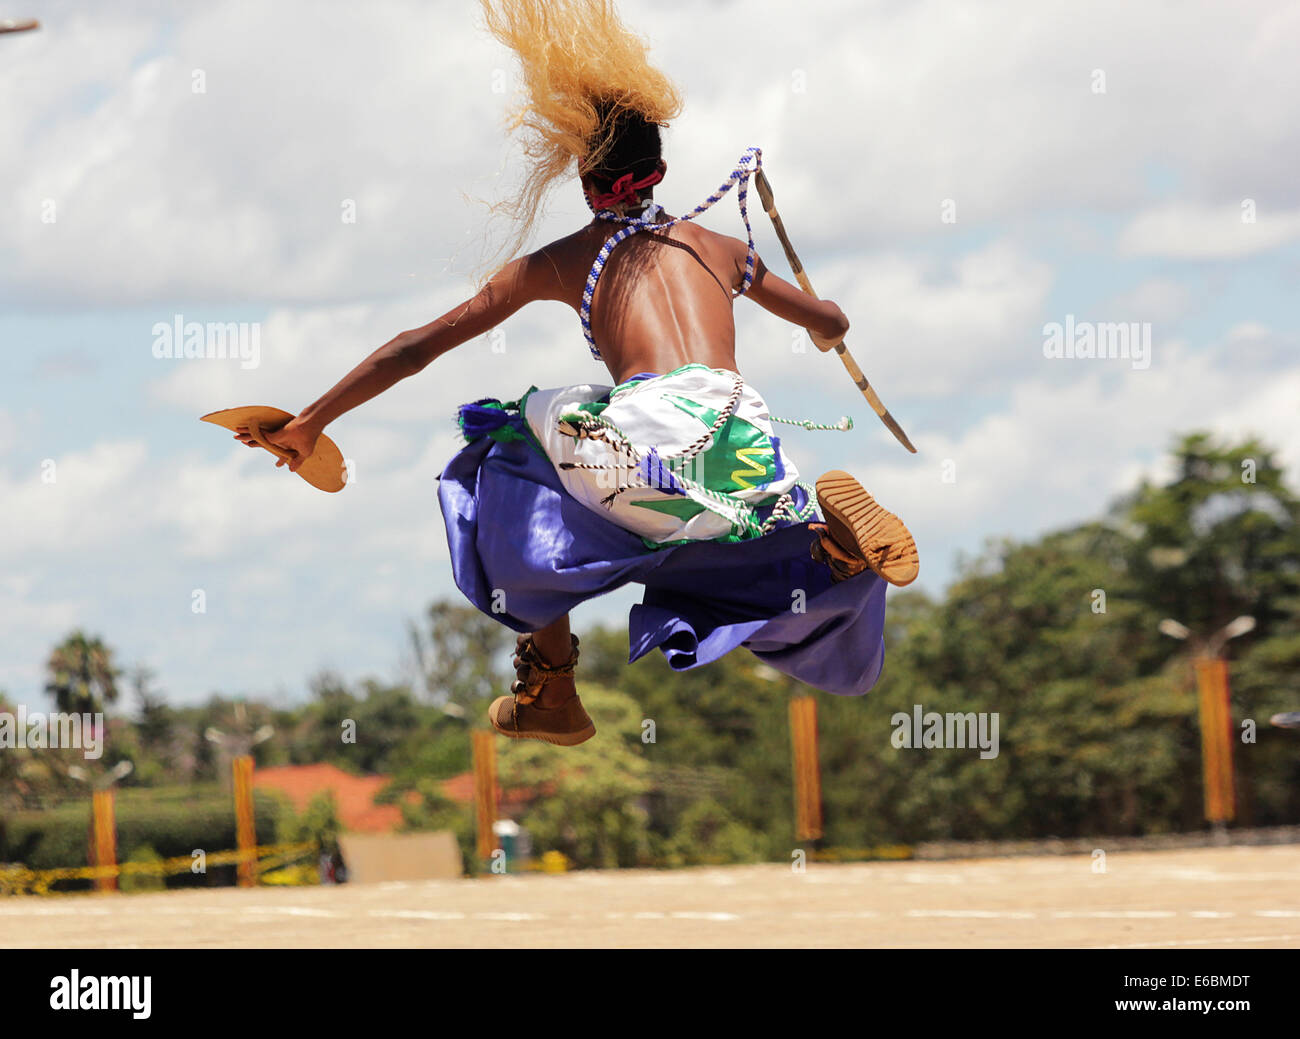 A member of the Burundi cultural troupe entertains guests in Kampala, Uganda - Stock Image